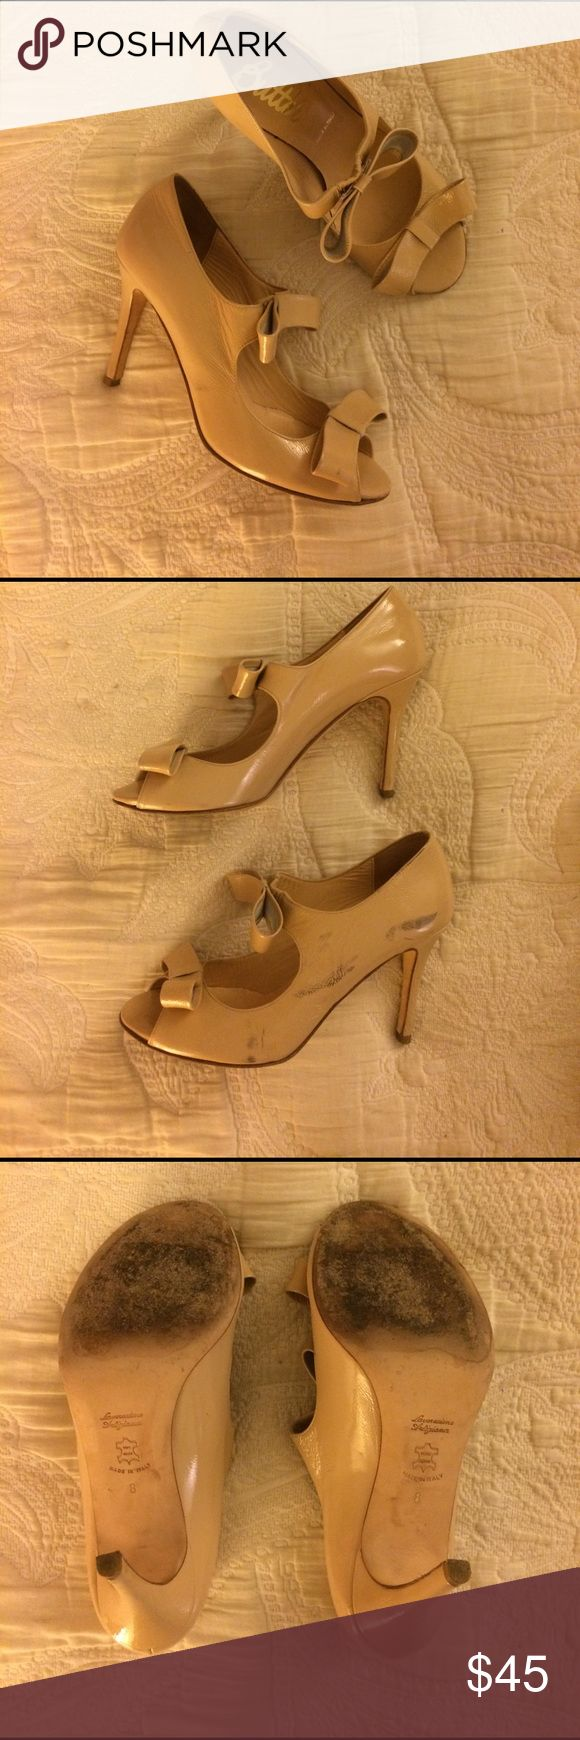 Selling this Butter Nude Bow Heels Size 8 Made in Italy on Poshmark! My username is: amyseidner. #shopmycloset #poshmark #fashion #shopping #style #forsale #Butter Shoes #Shoes